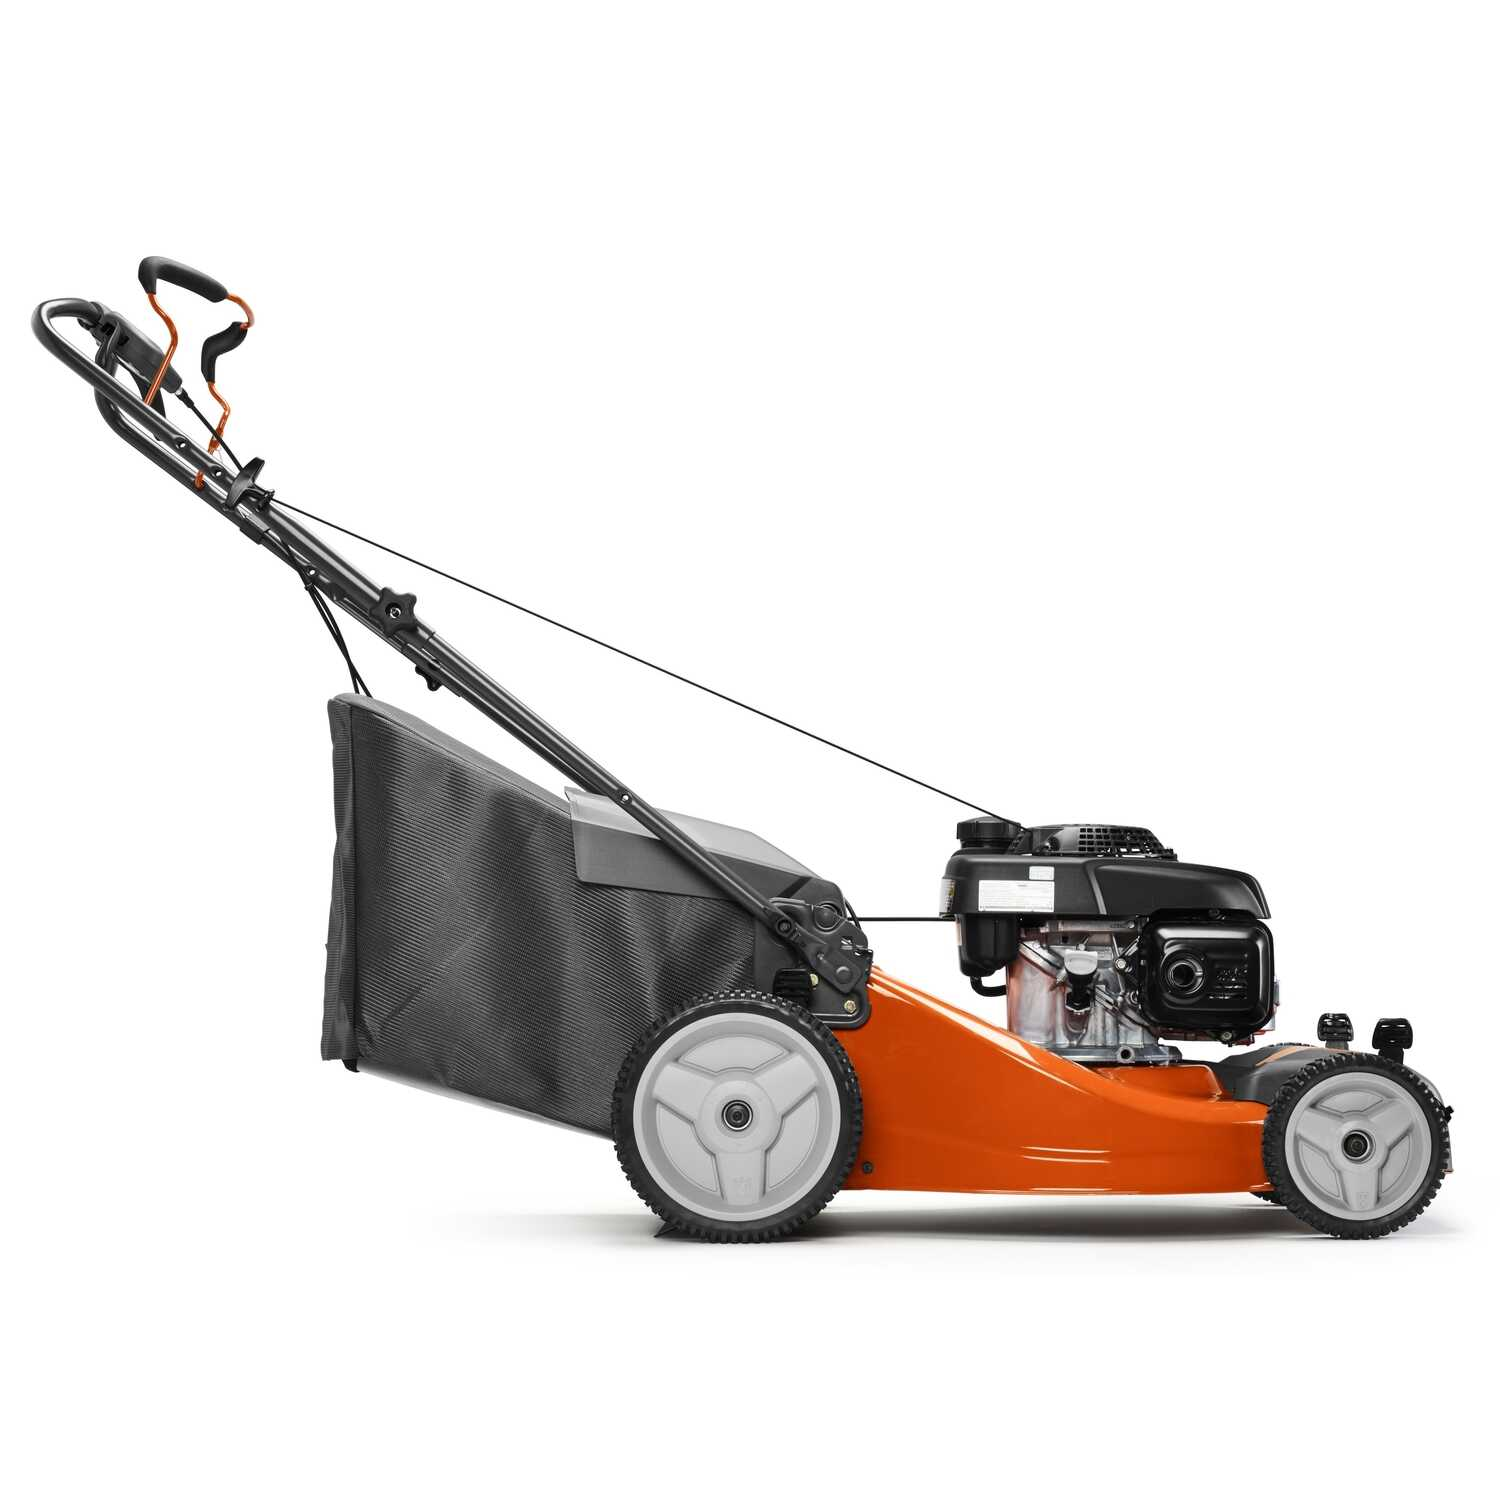 Husqvarna  LC221RH  160 cc Self-Propelled  Lawn Mower